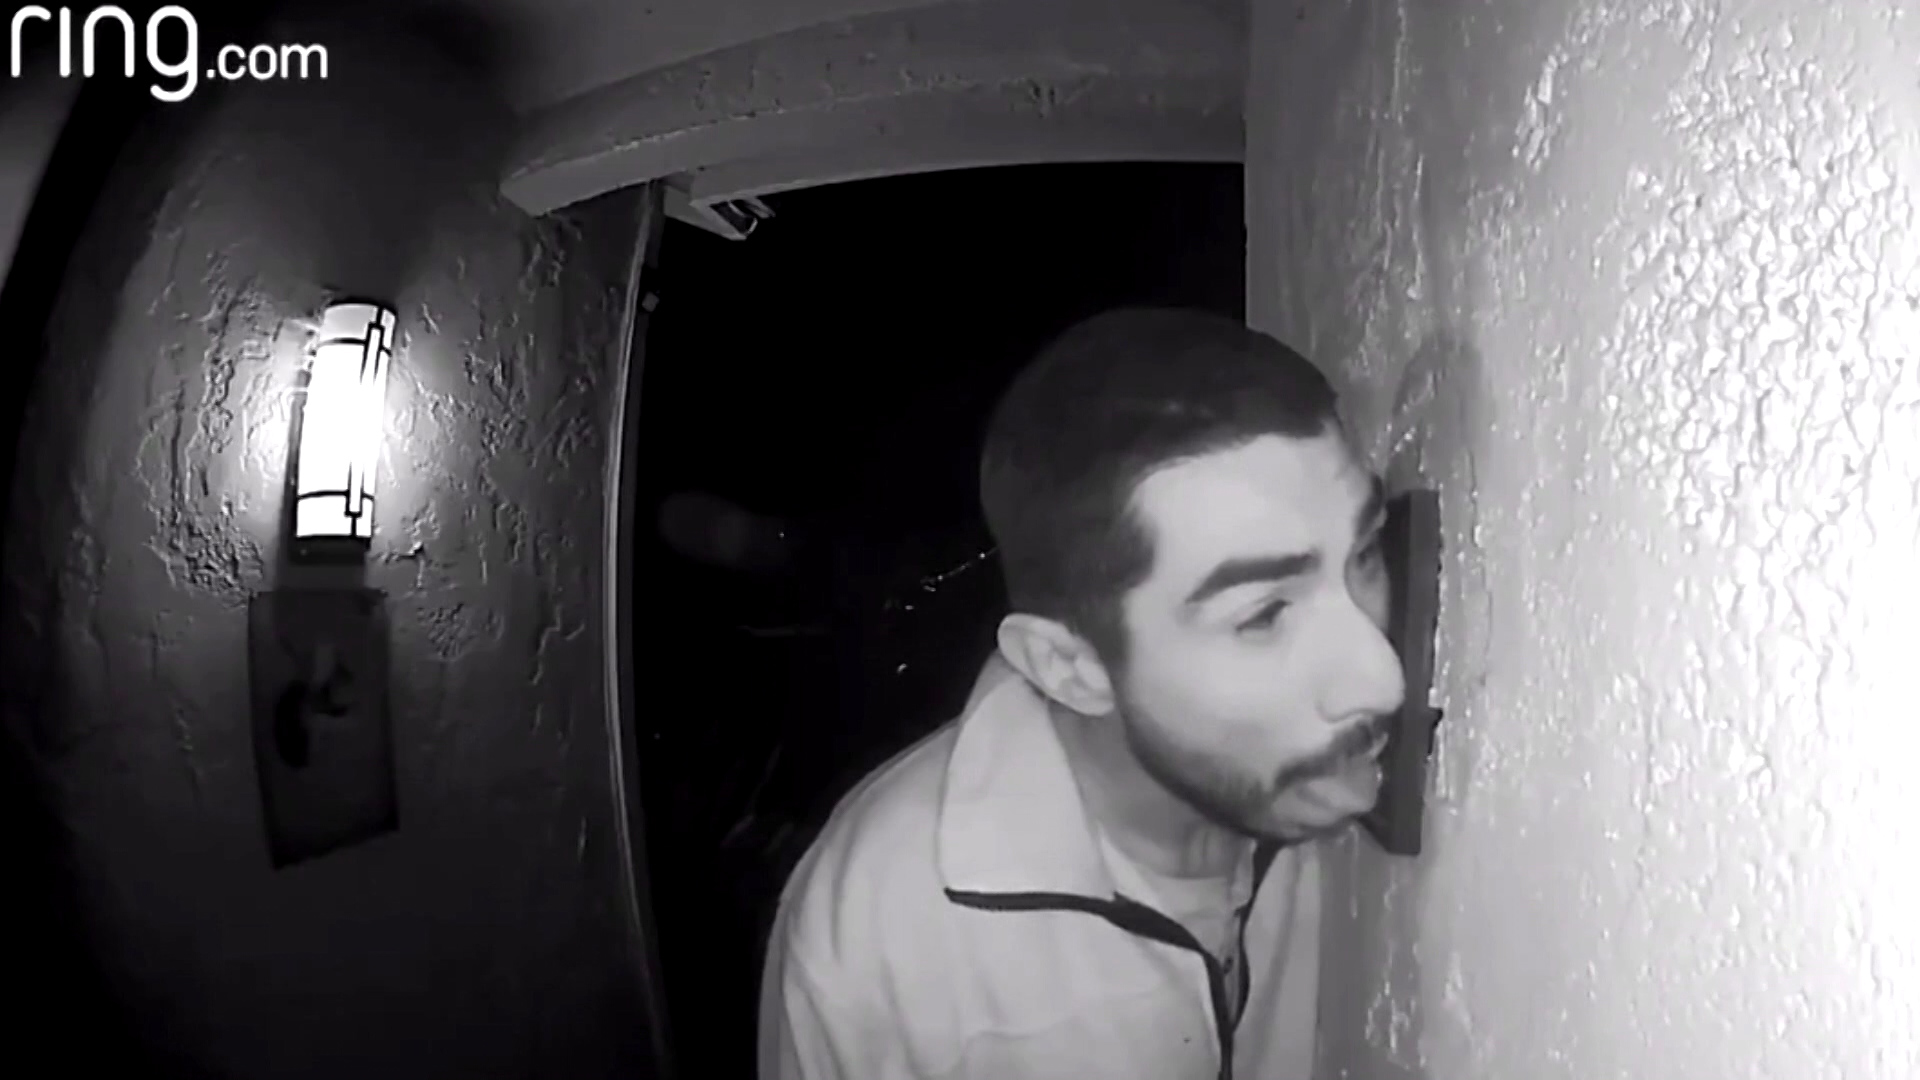 Man caught on video licking house's intercom system for hours